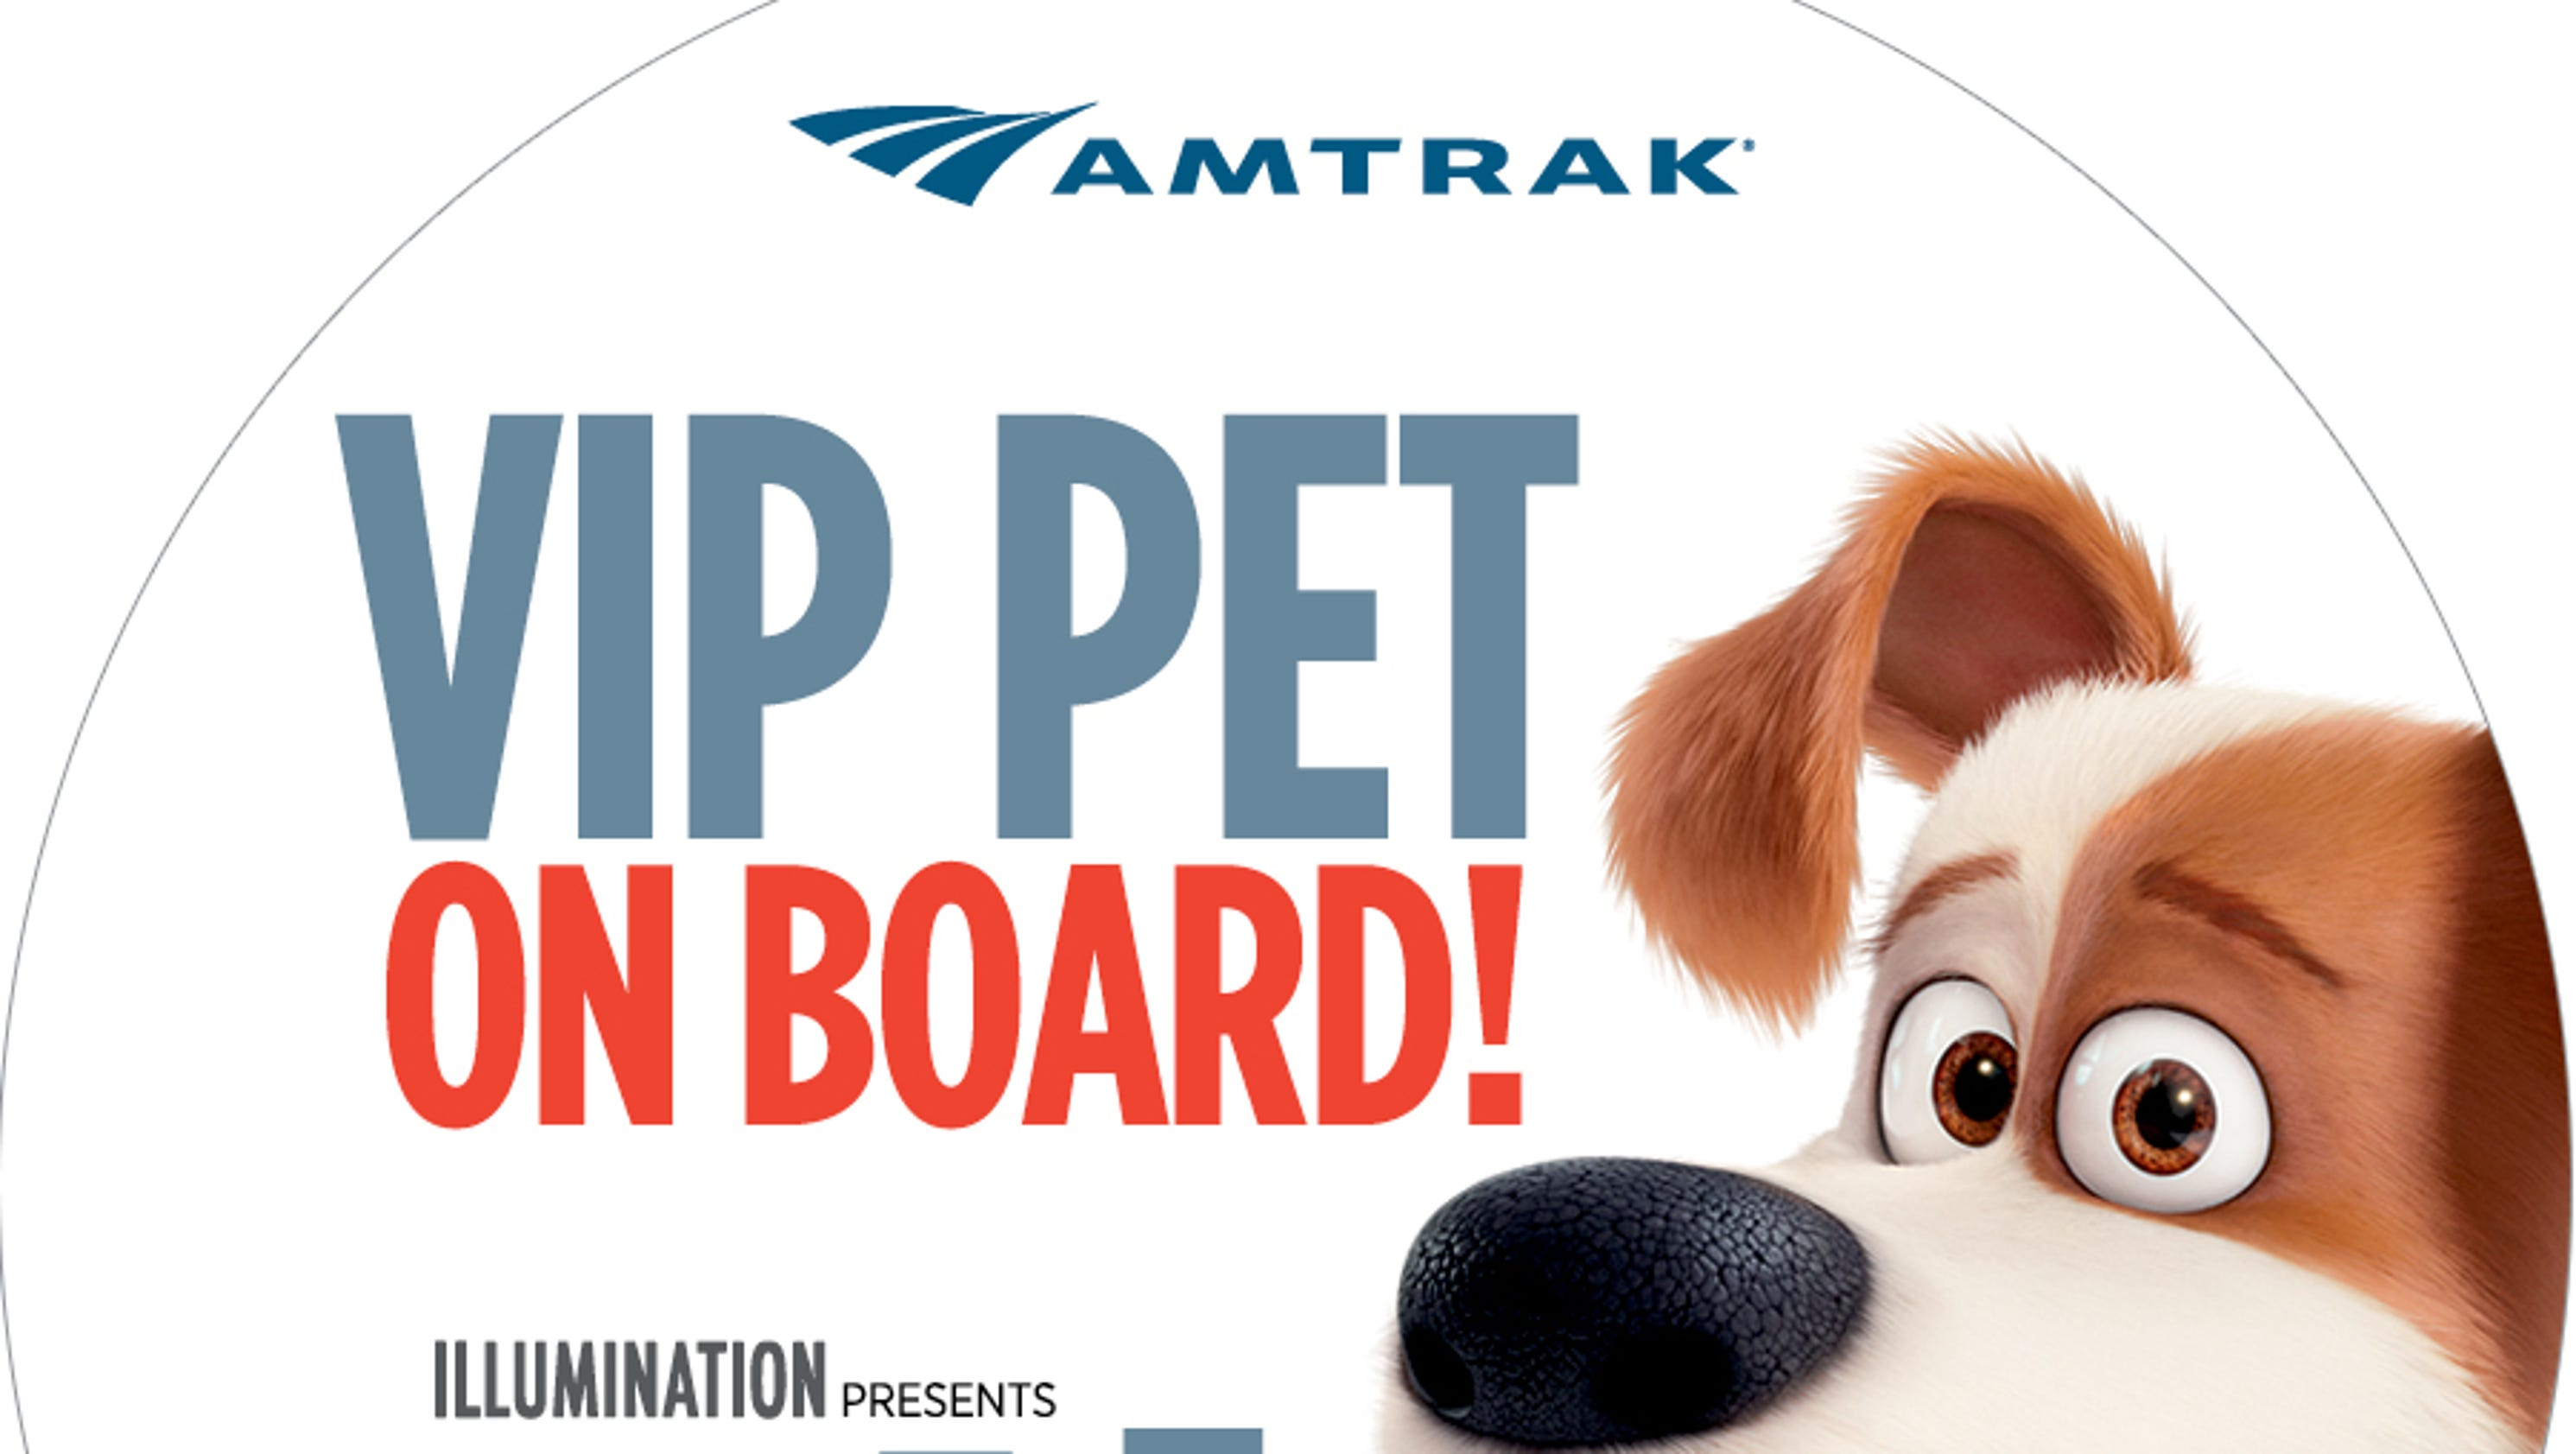 Amtrak Tickets, Schedules and Train Routes